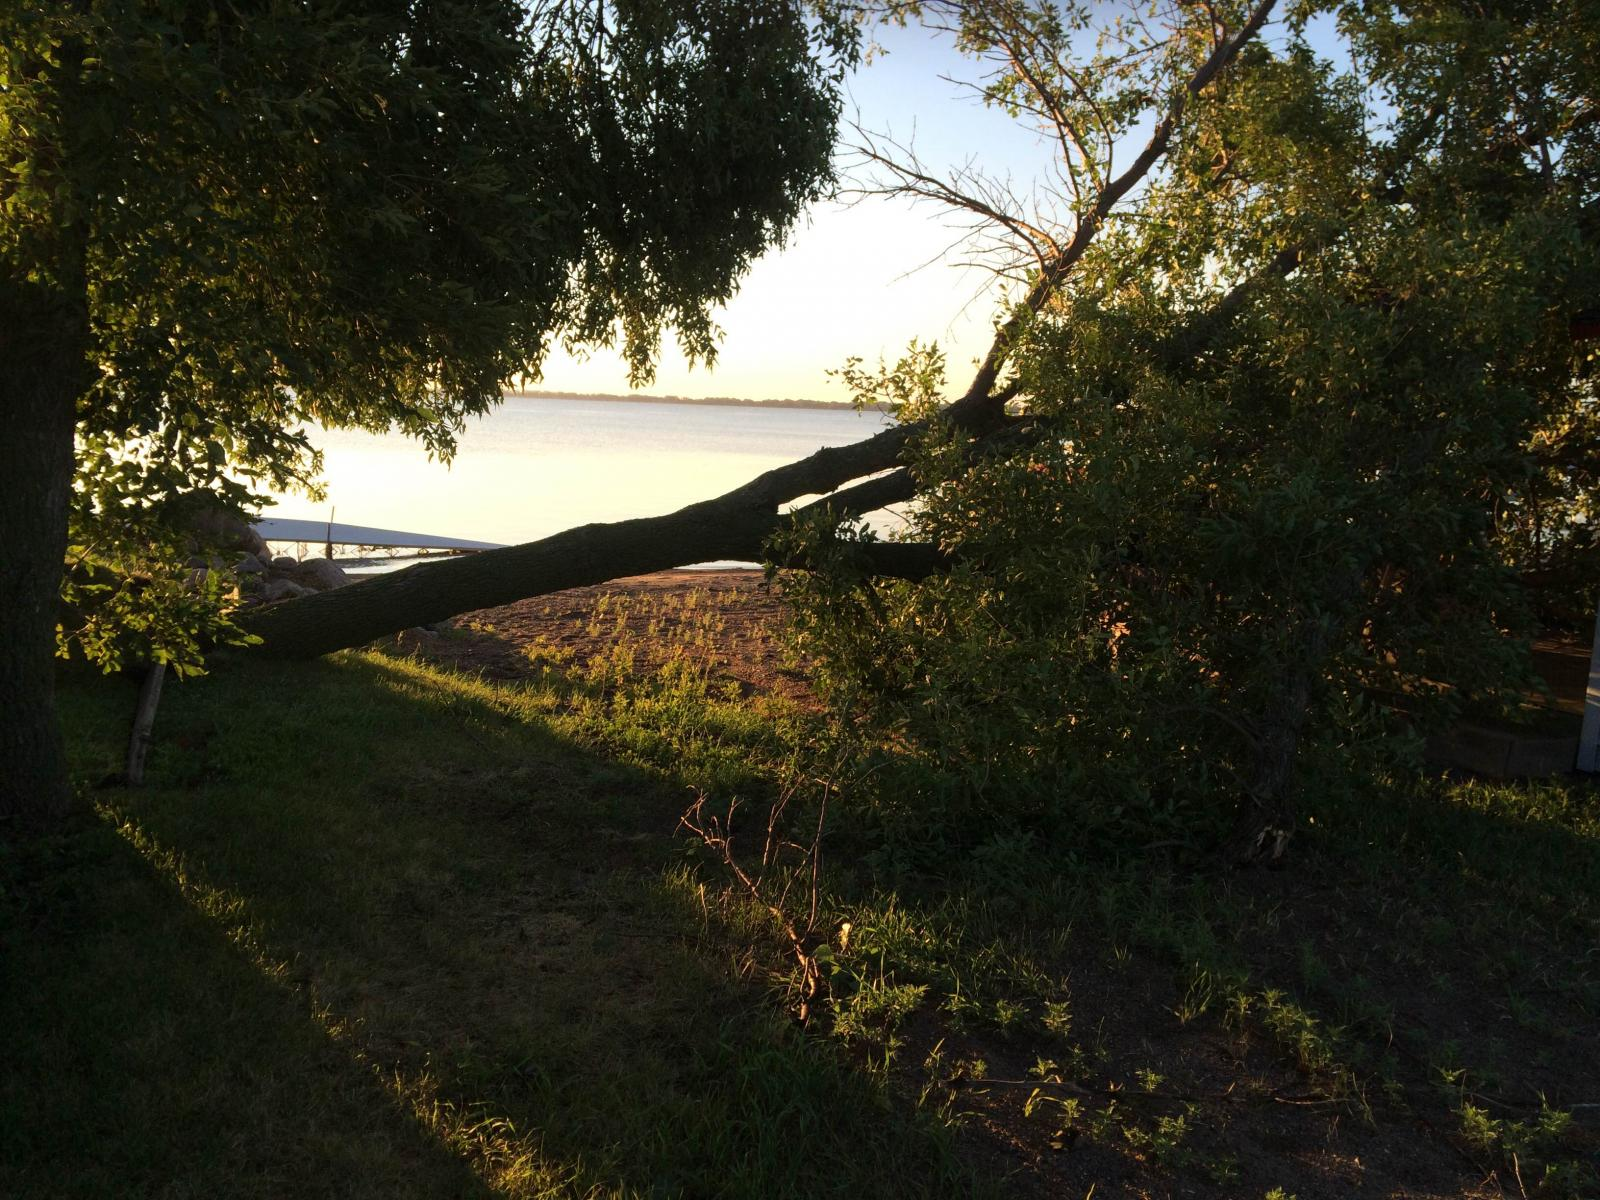 Damage at Lake Poinsett - Photo by Dave Schaefer